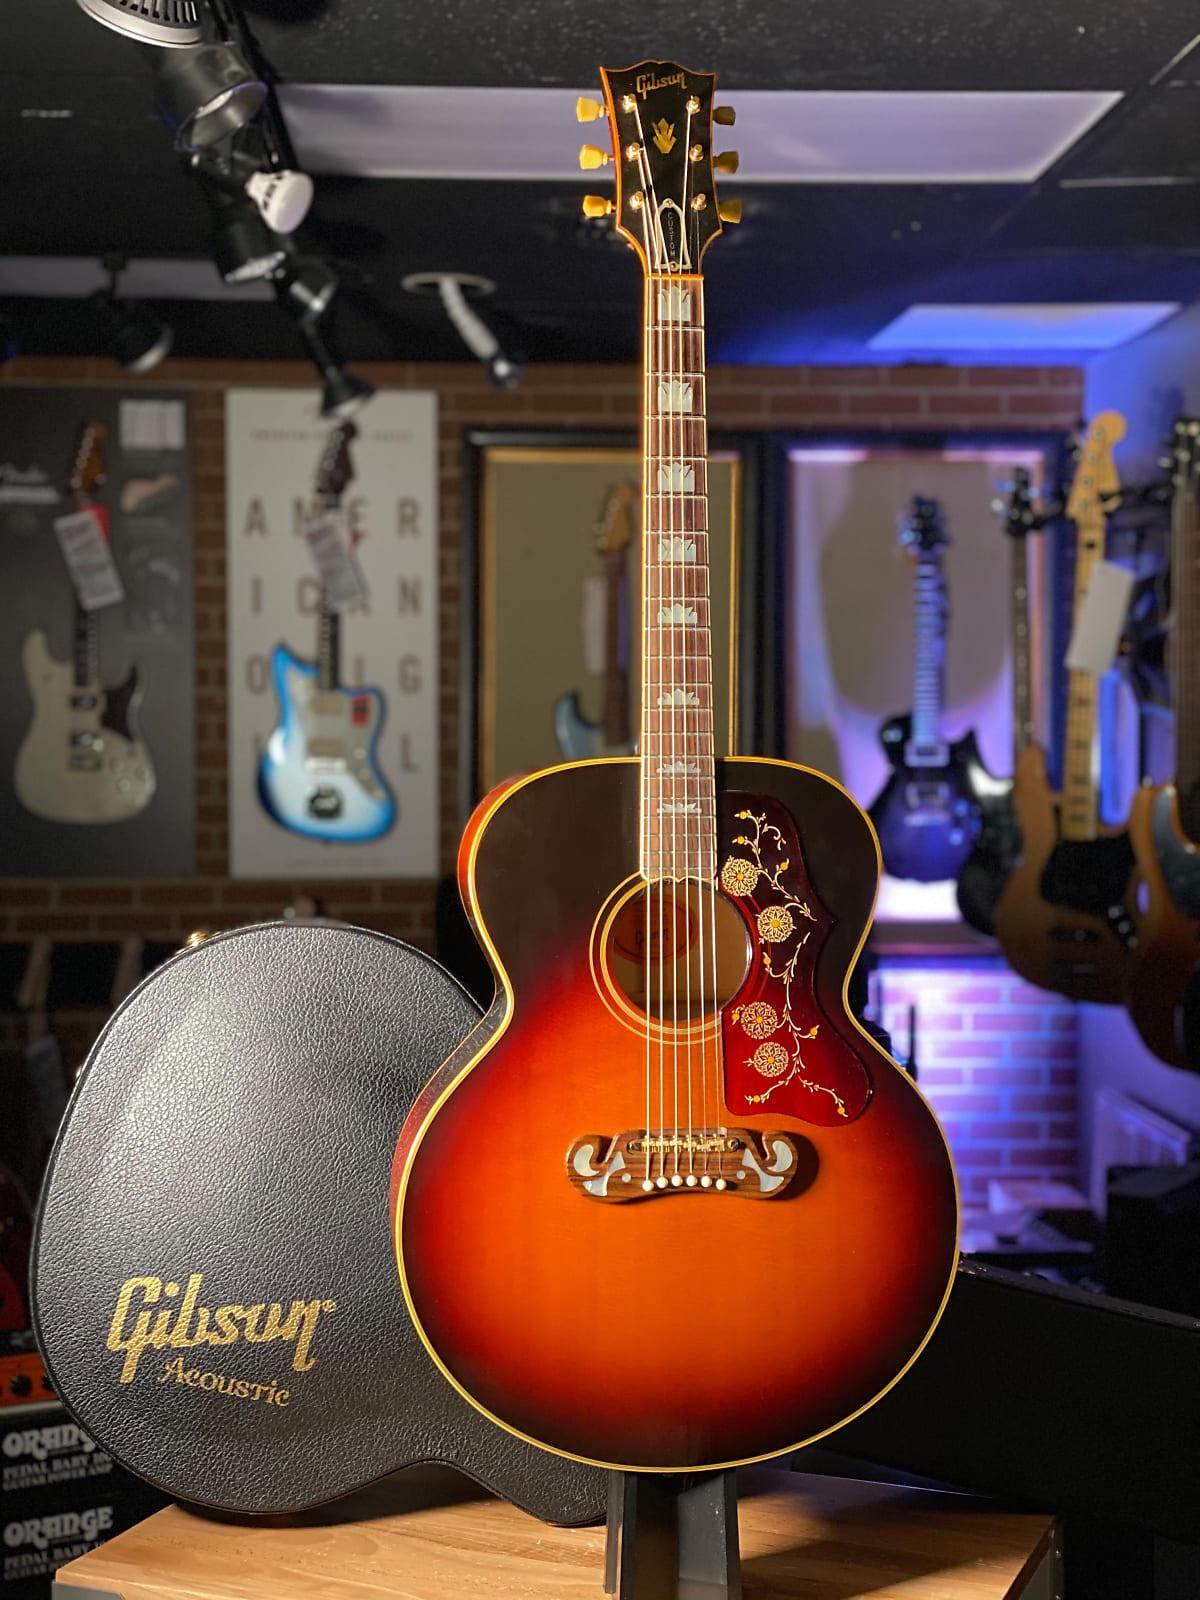 2014 Gibson Custom Shop 1964 J-200 with case & certificate